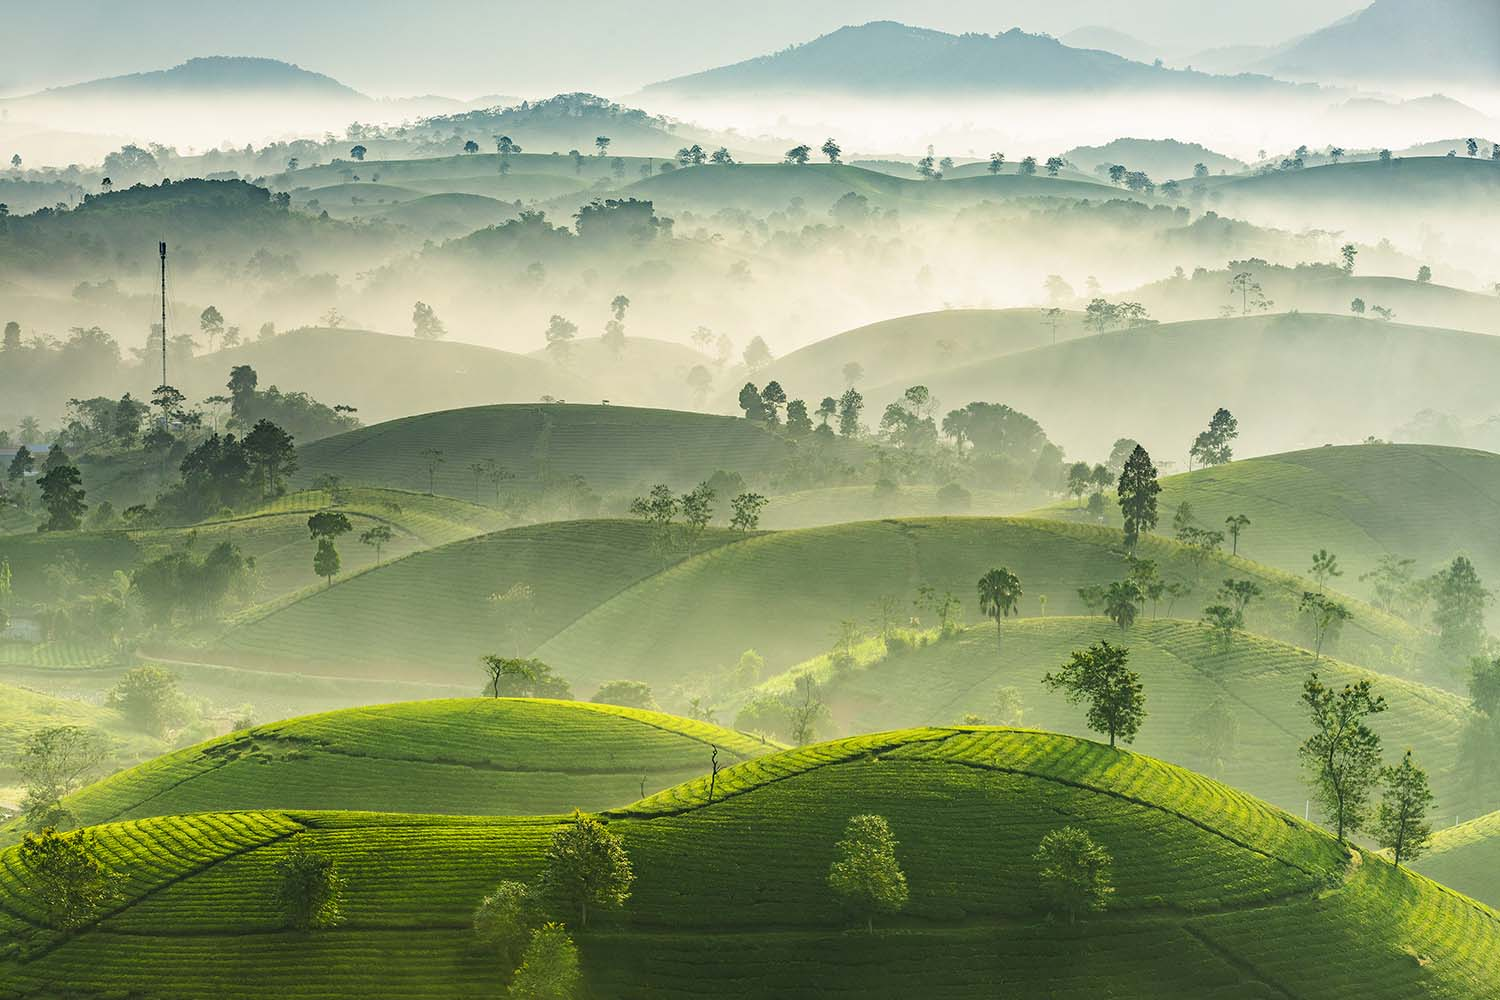 Nguyen phuc thanh viet nam entry open competition landscape 2019 sony world photography awards